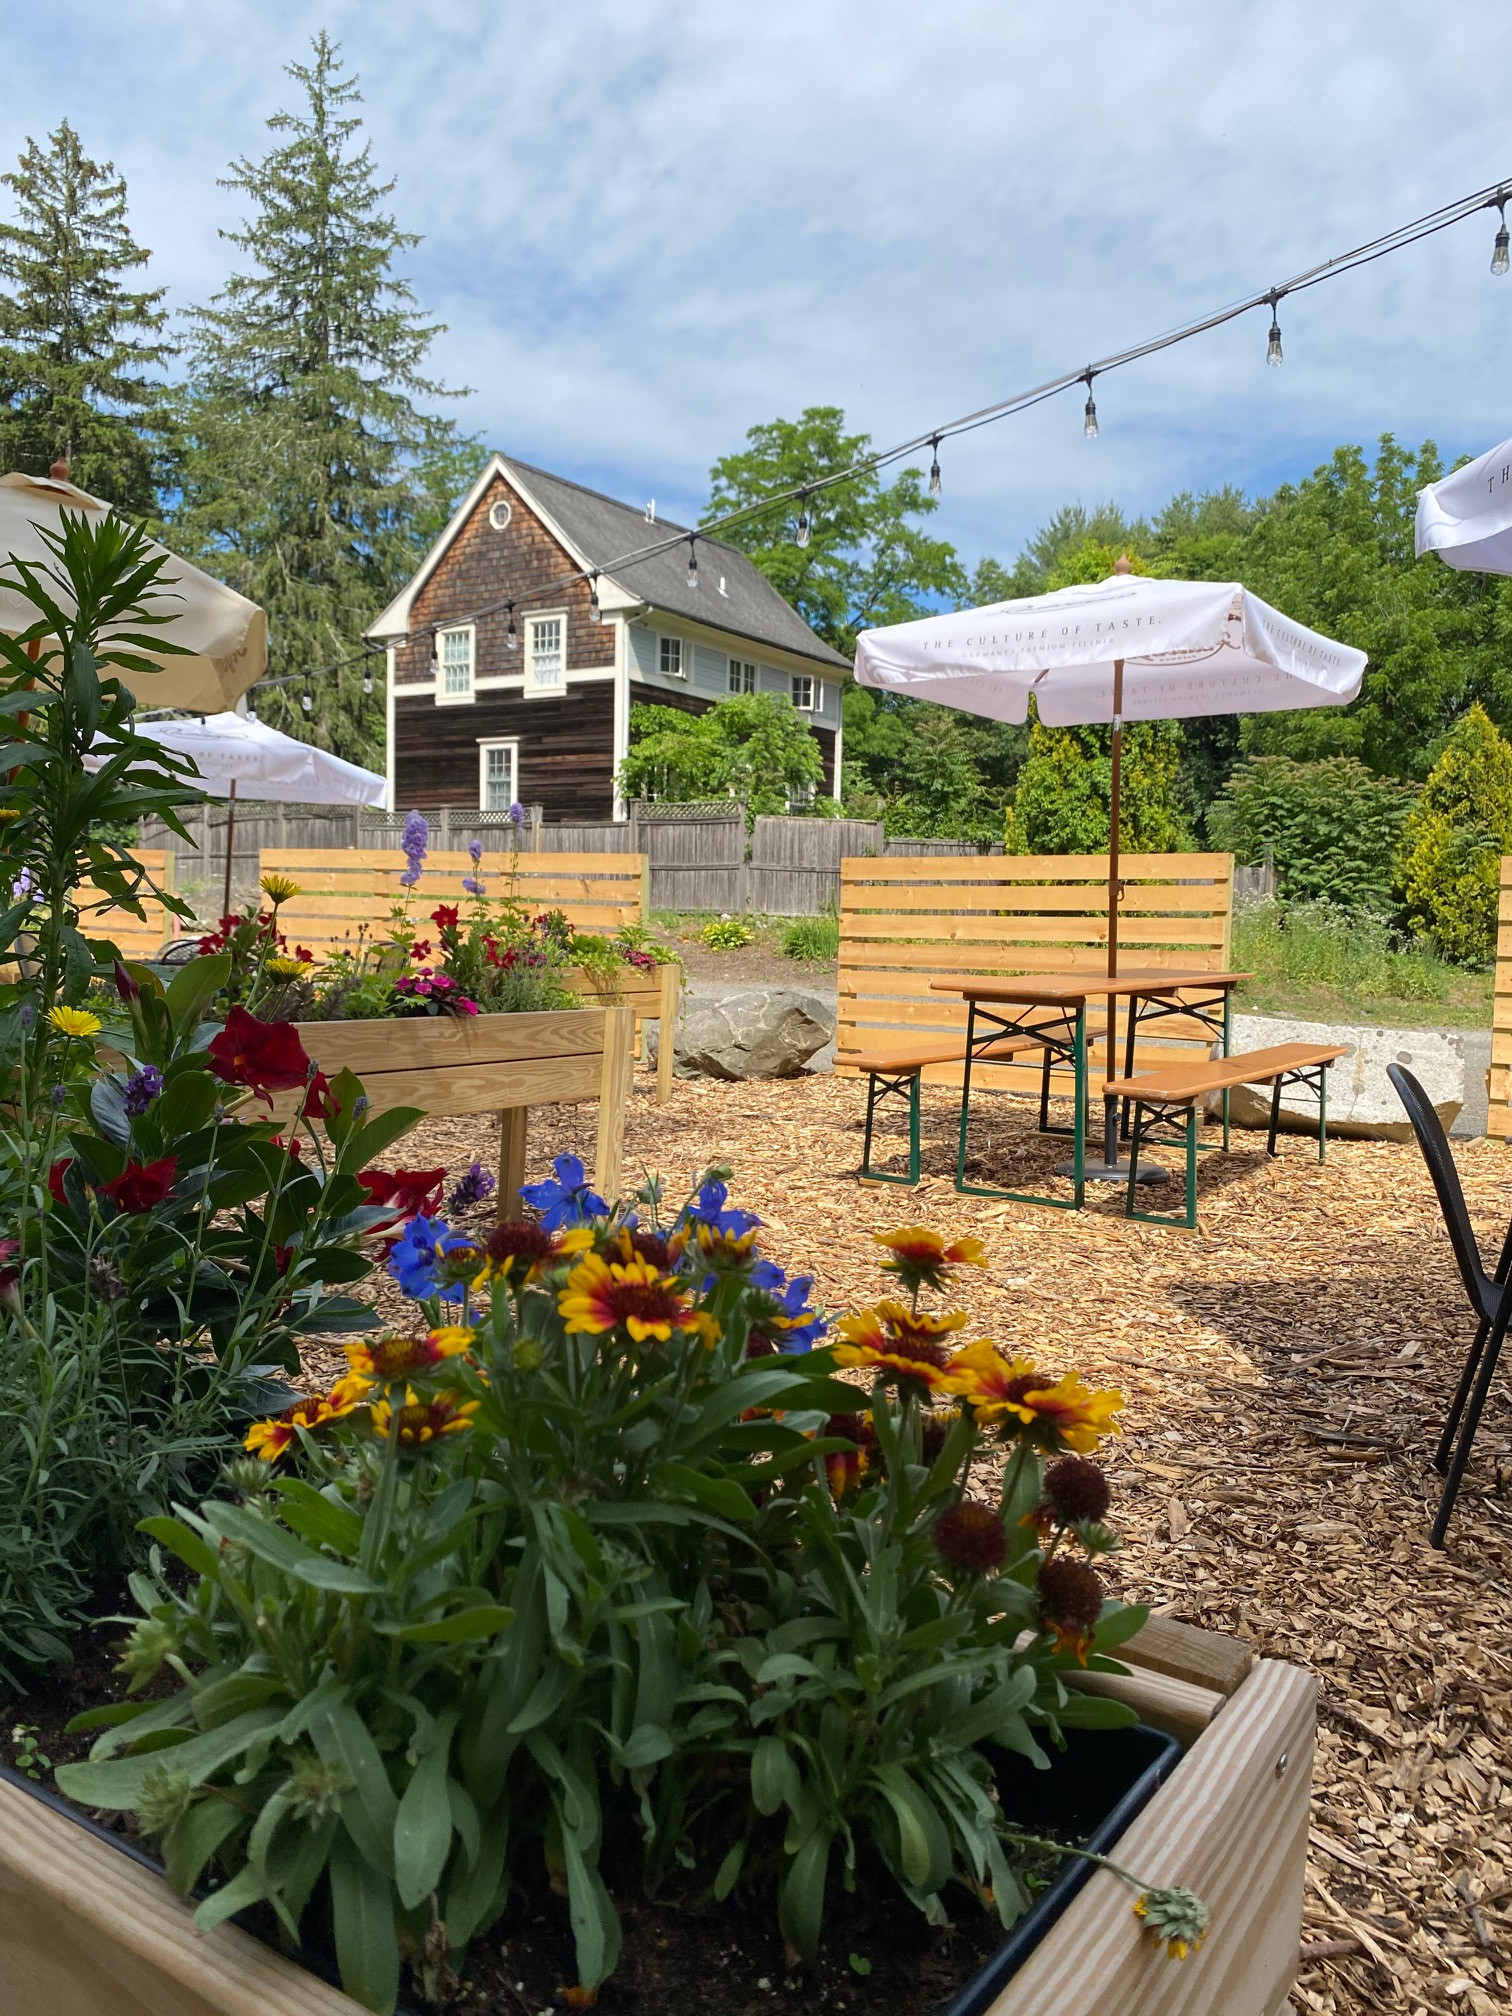 The Beer Garden - Private Event Venue